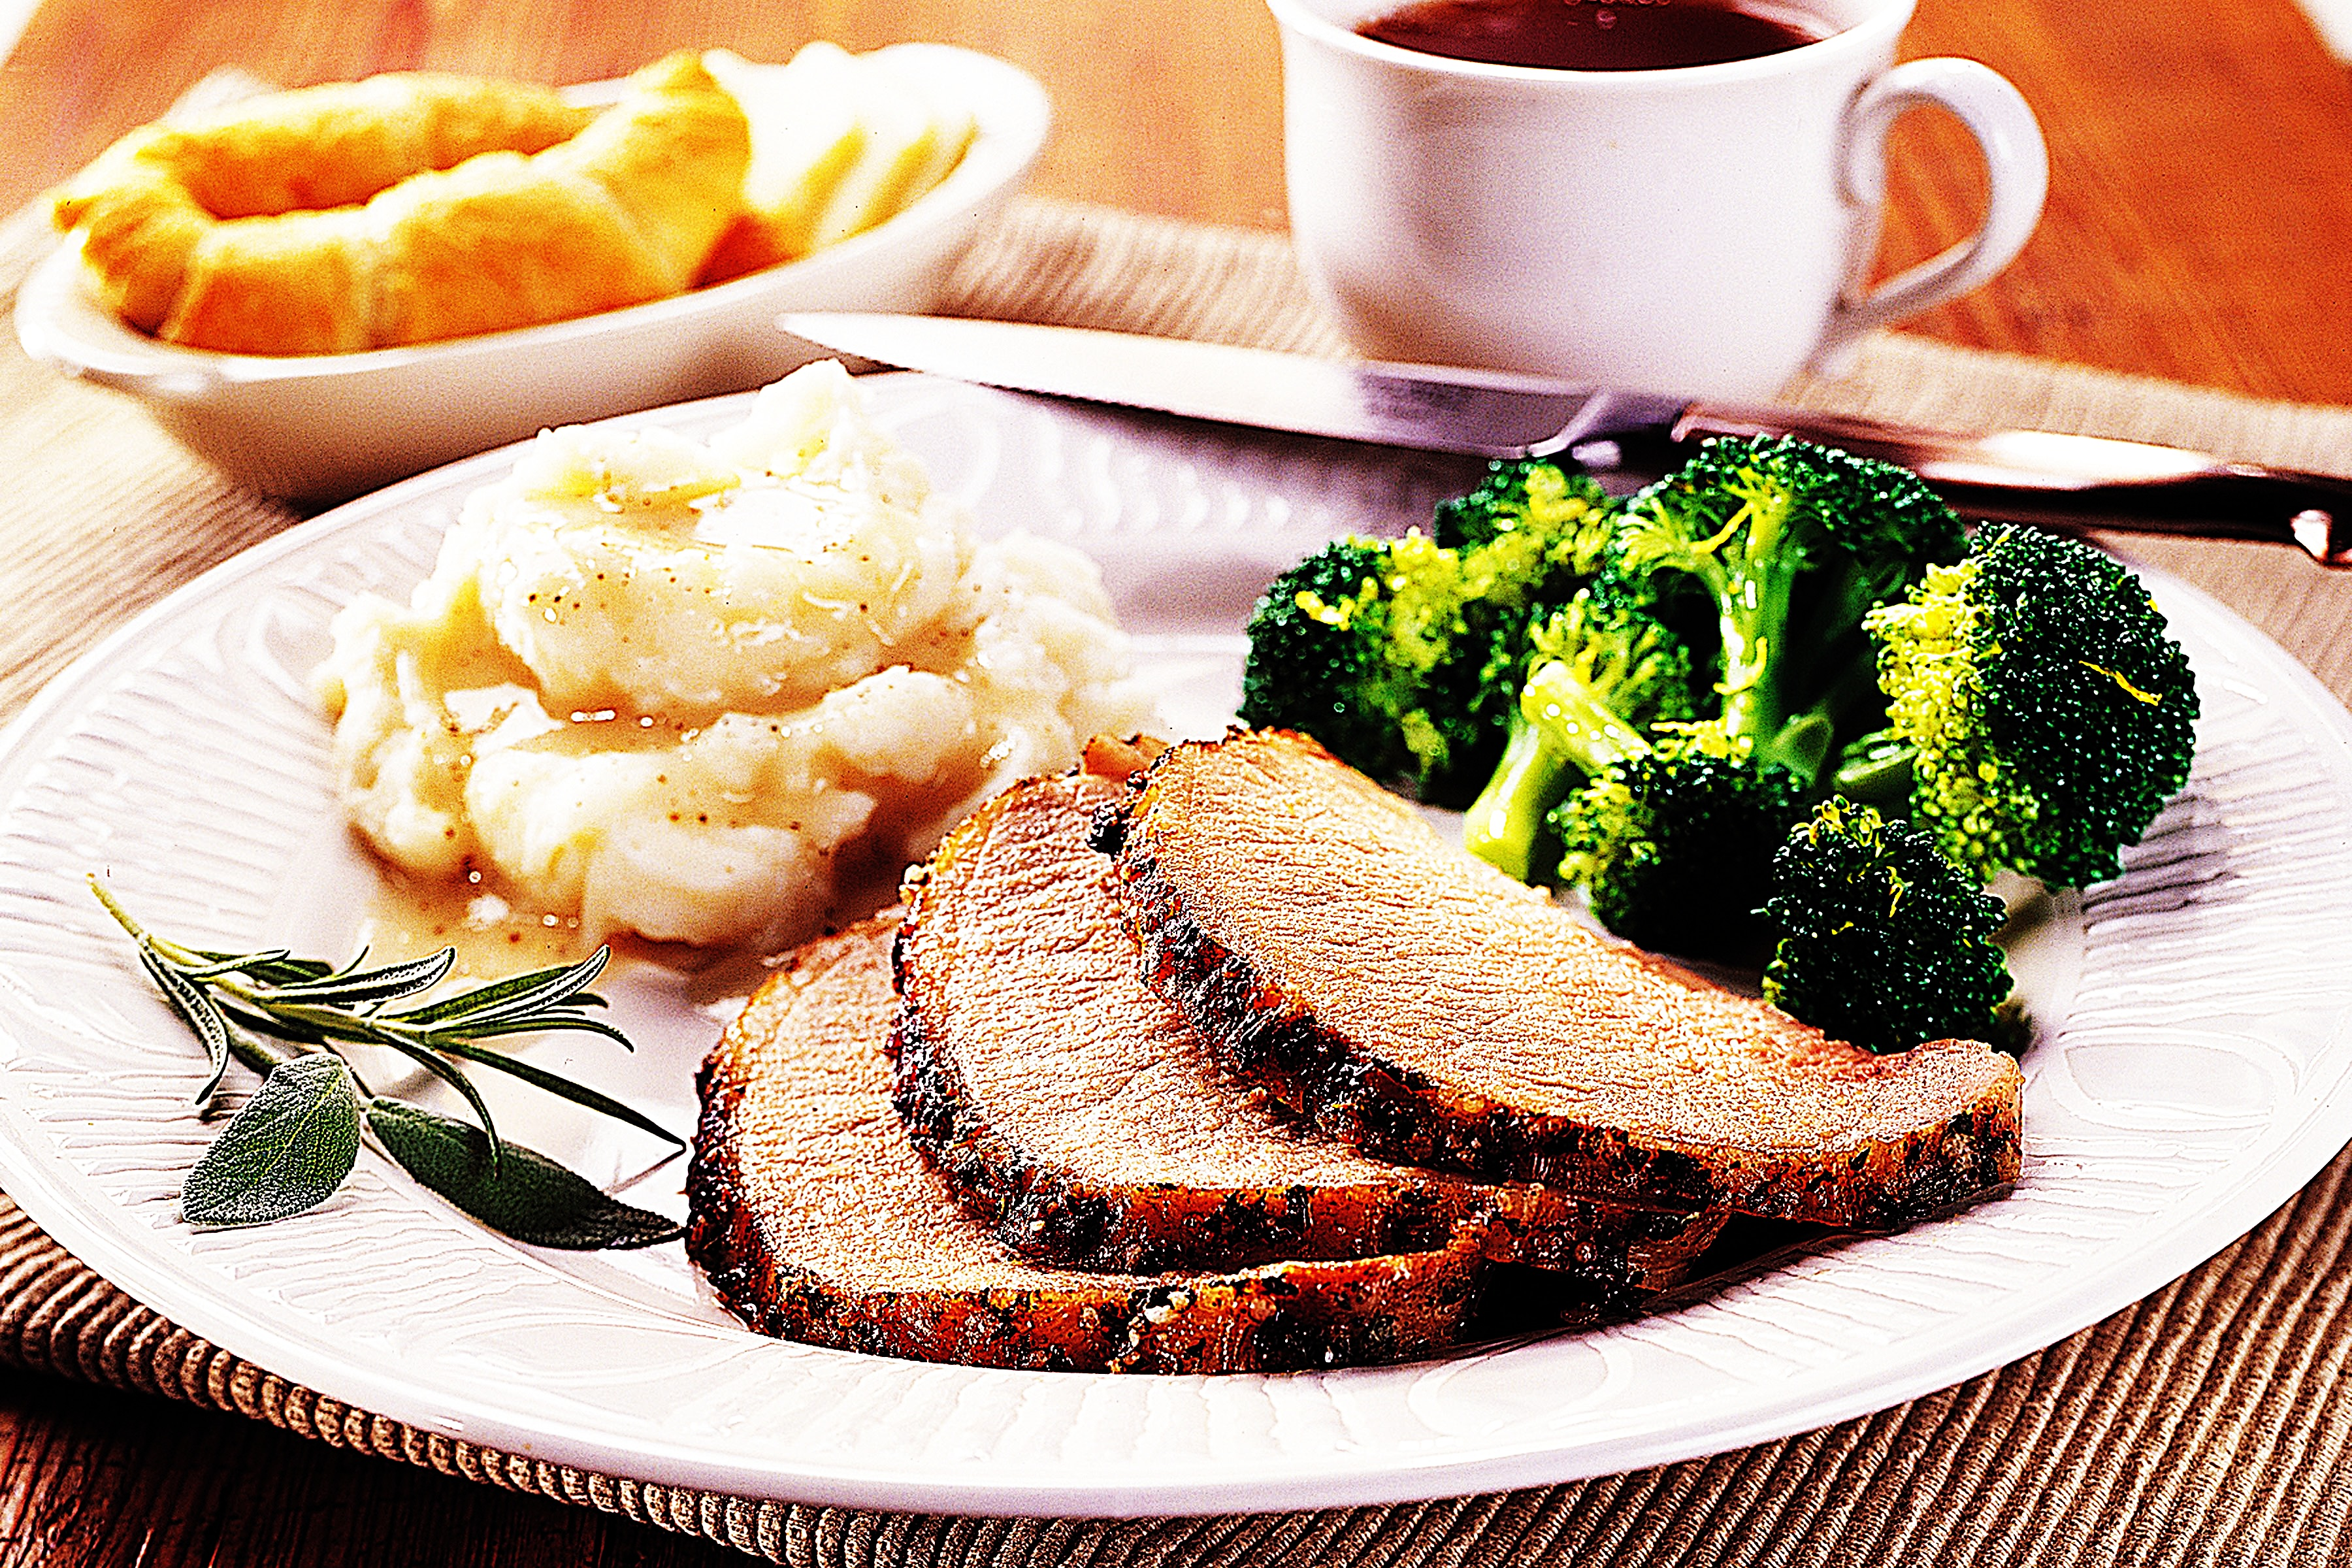 Stupid-Easy Recipe for Garlic-Herb Roast Pork (#1 Top-Rated)